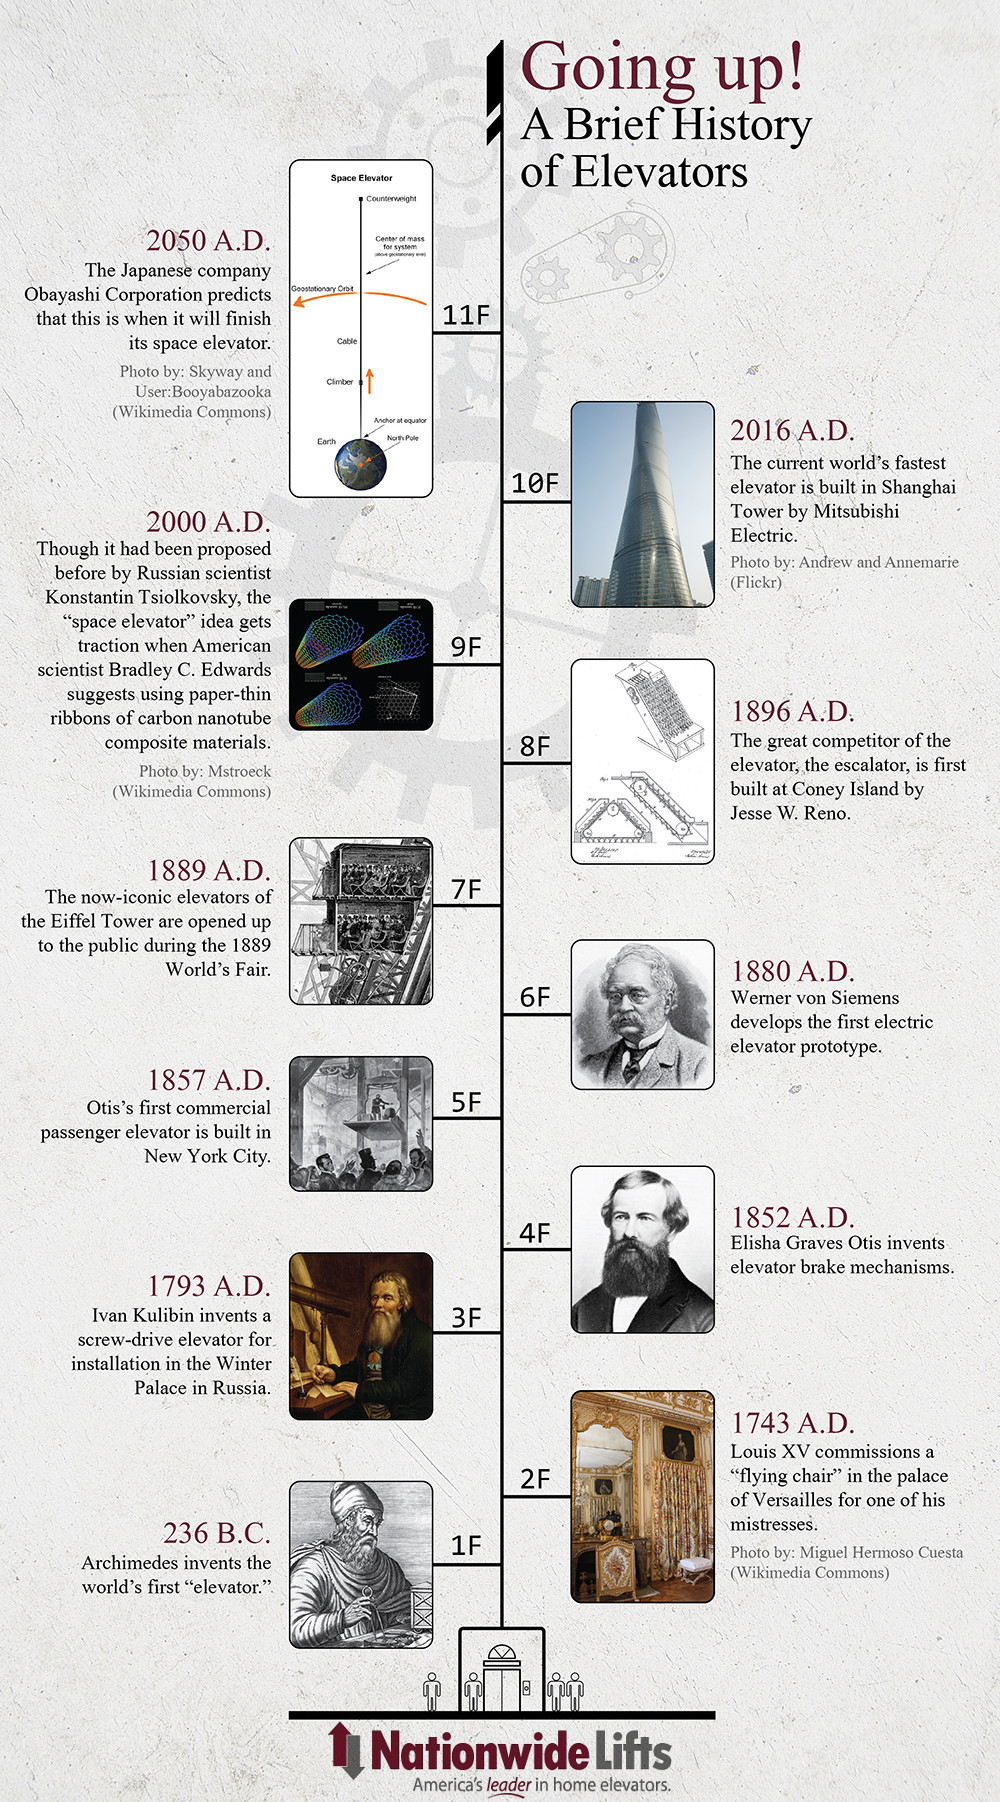 A Brief History of Elevators